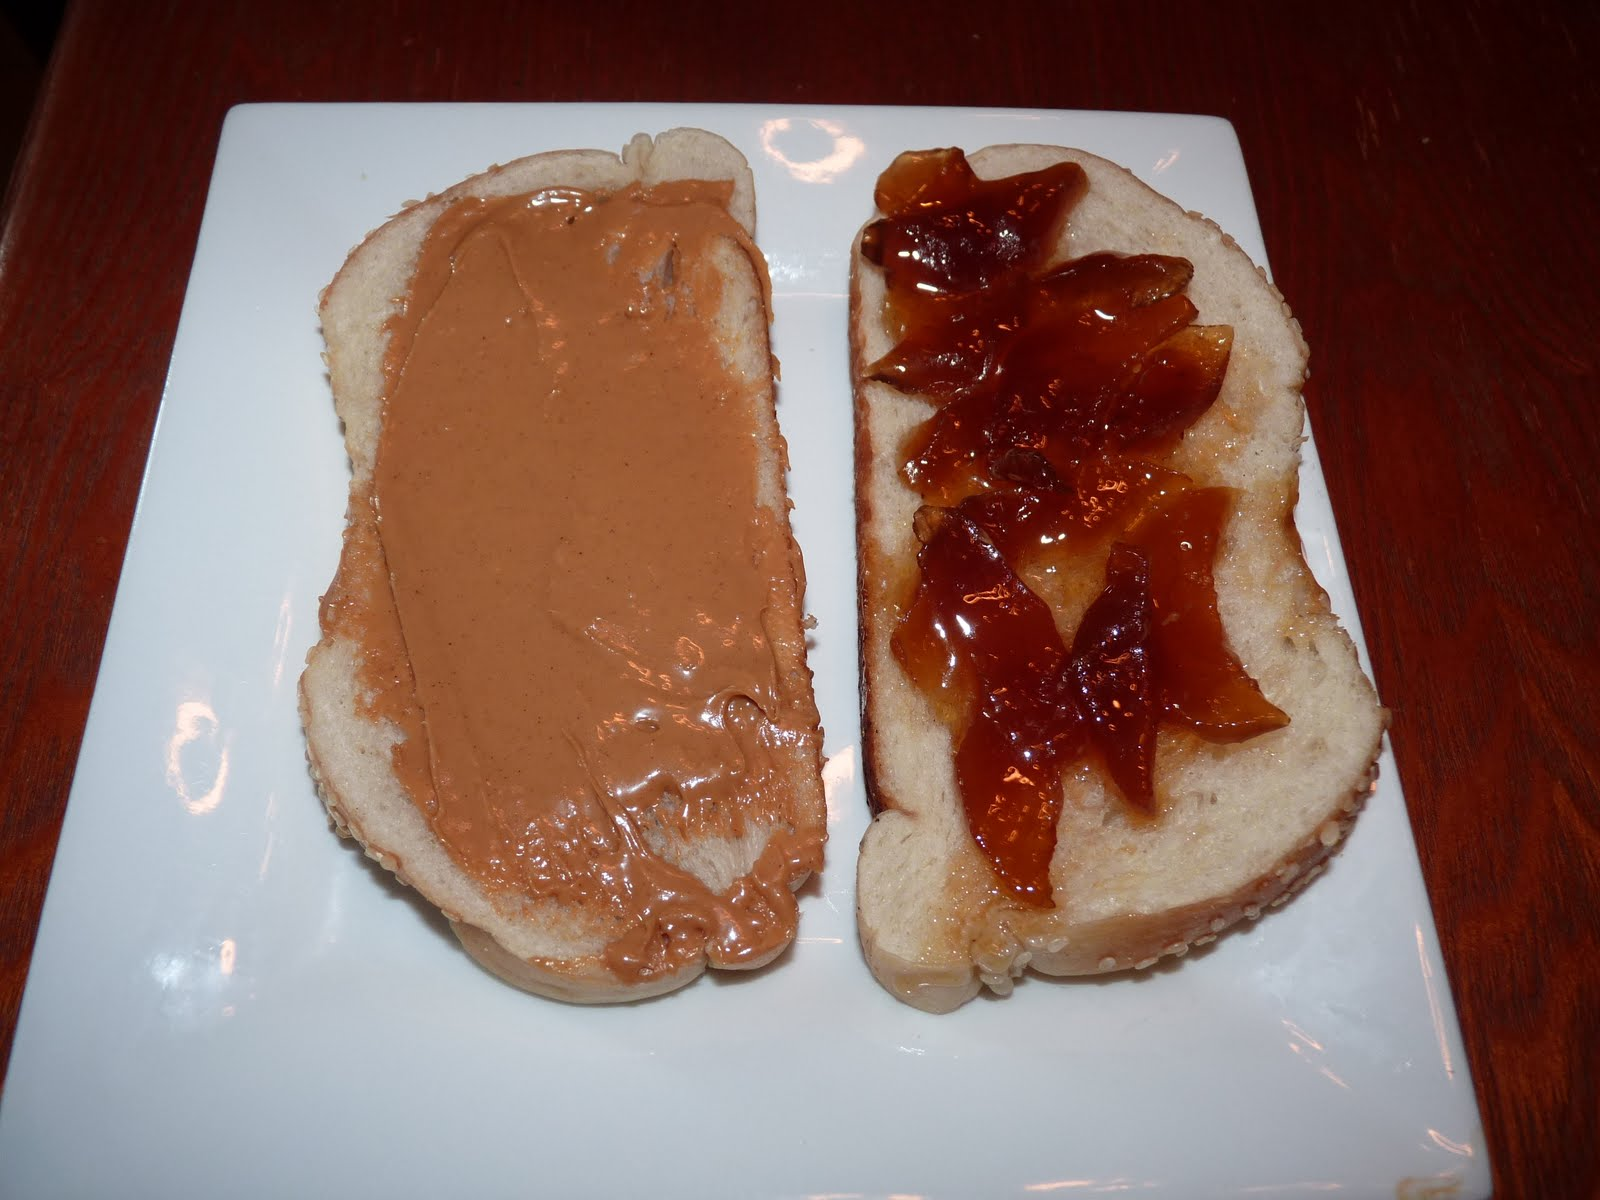 Grilled Peanut Butter and Jelly Sandwich - Sweet T Makes Three